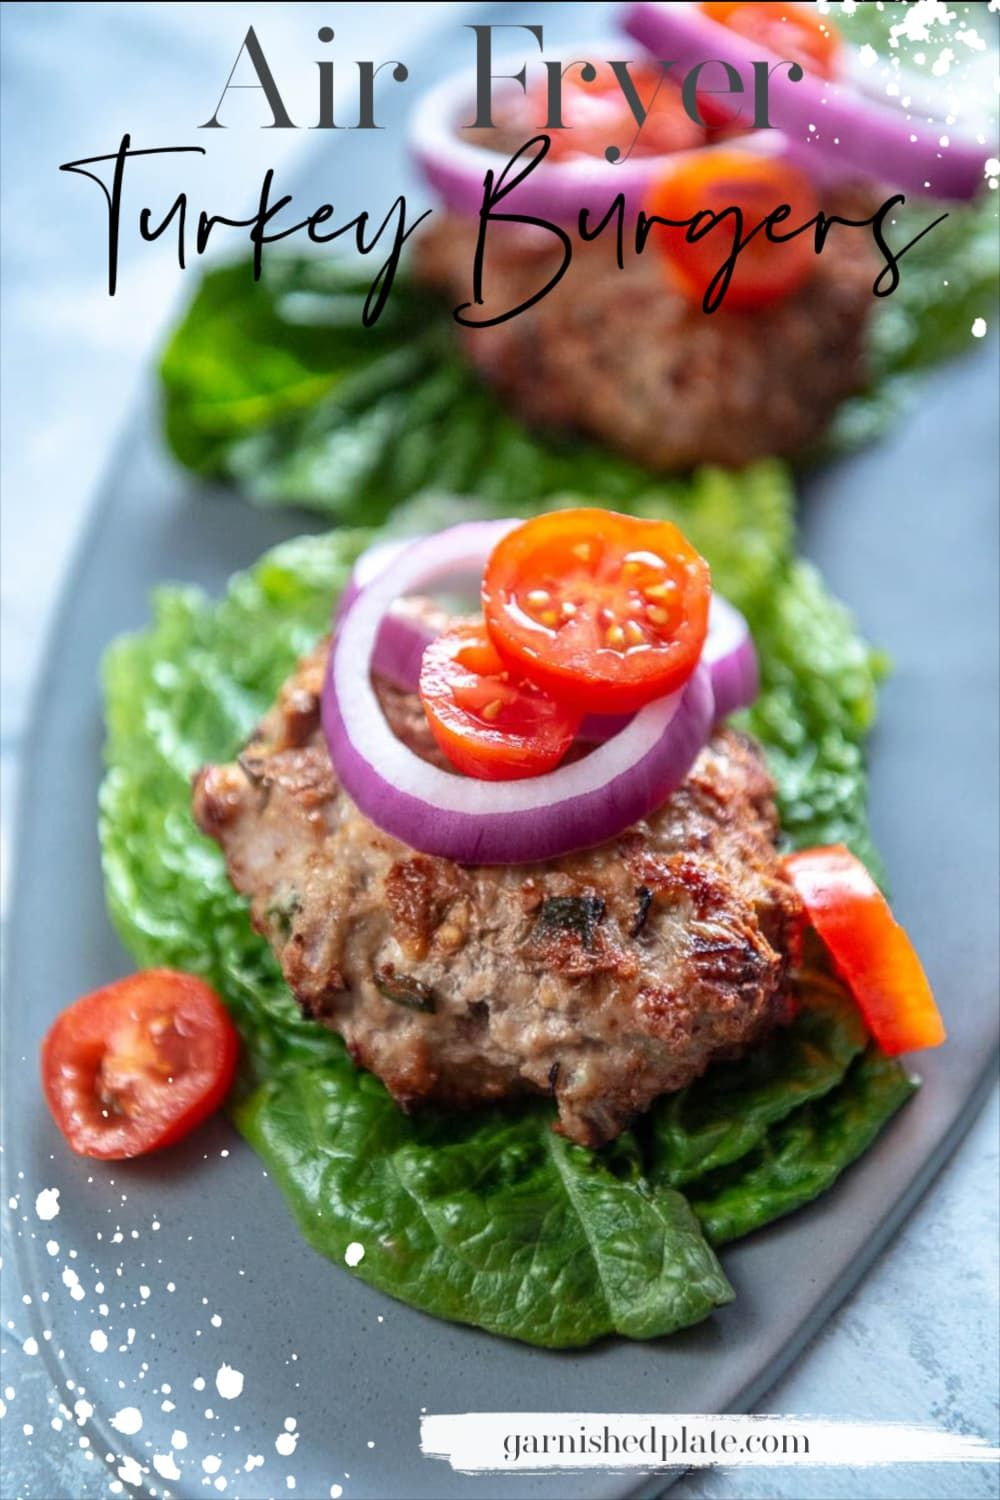 Craving a burger but don't want to fire up the grill? My